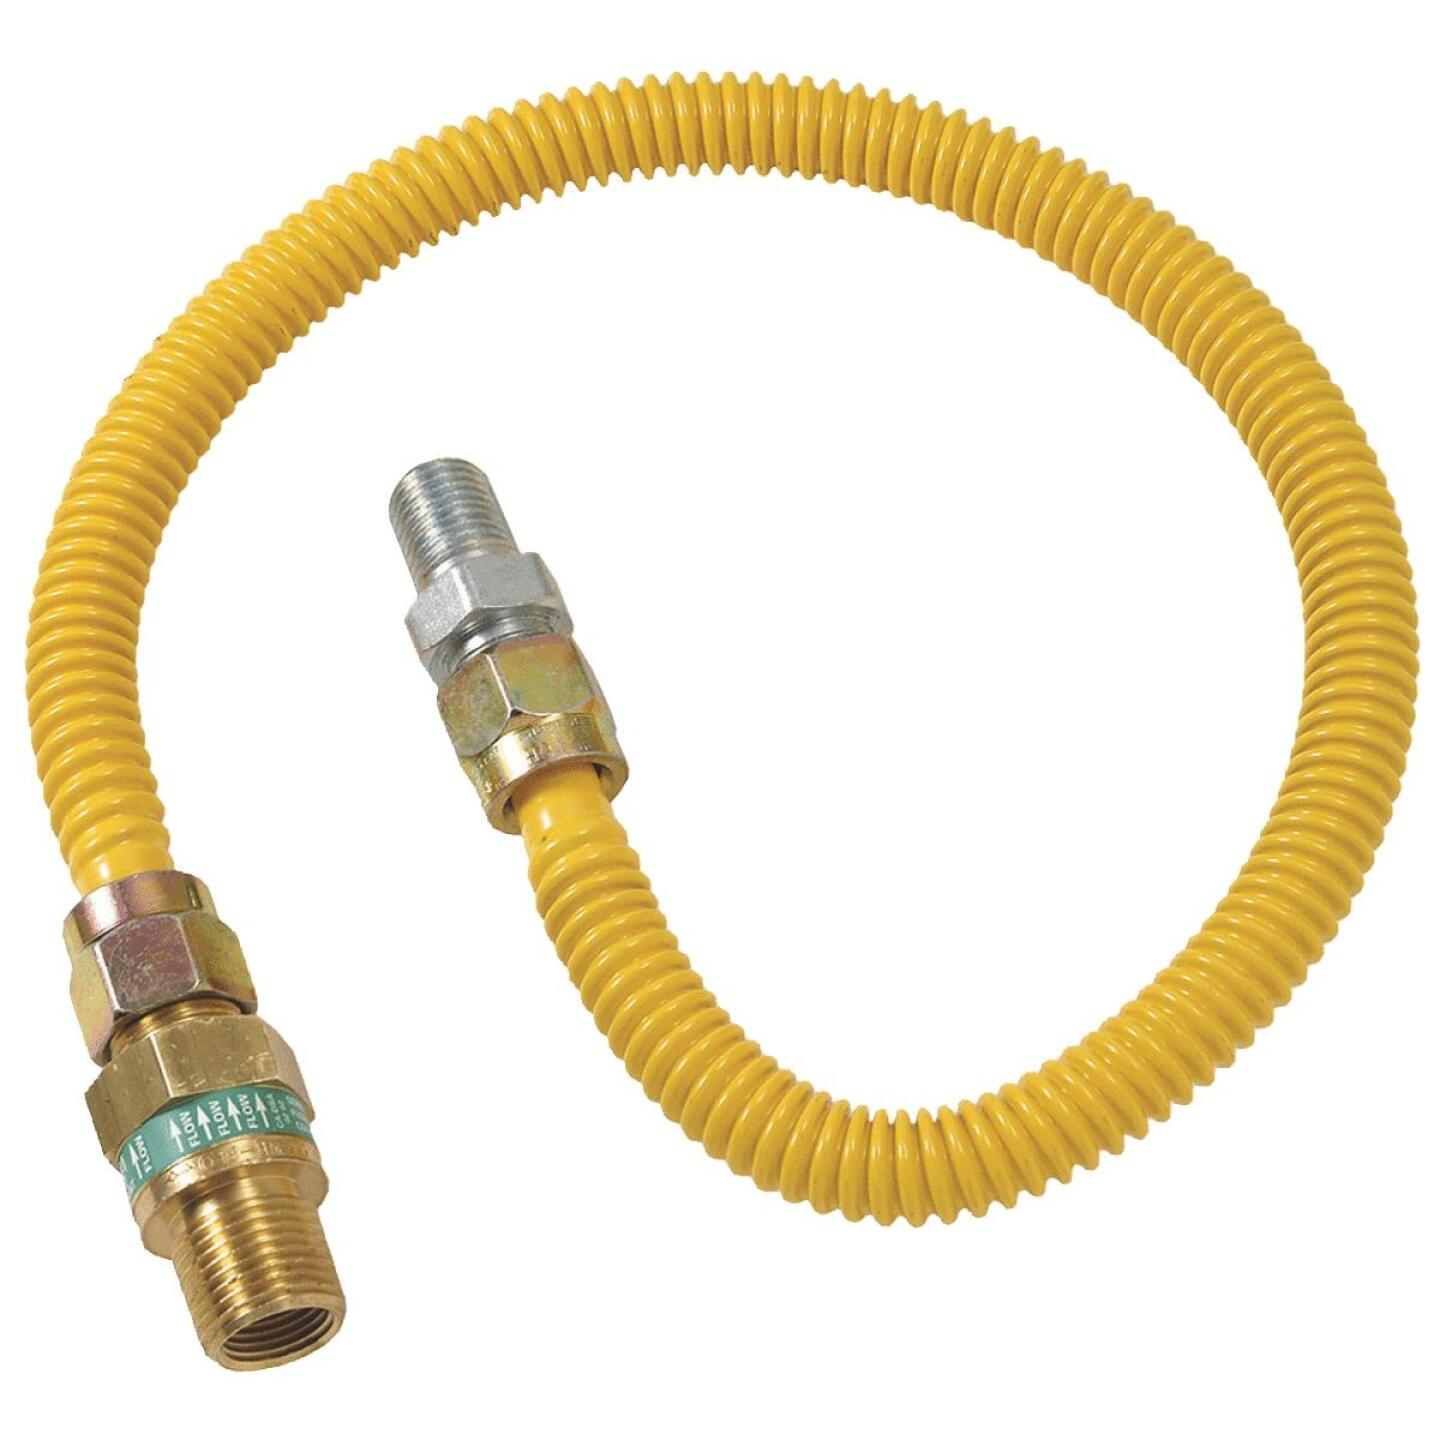 BrassCraft Safety +PLUS 1/2 In. x 3/8 In. x 18 In. Gas Connector Image 1